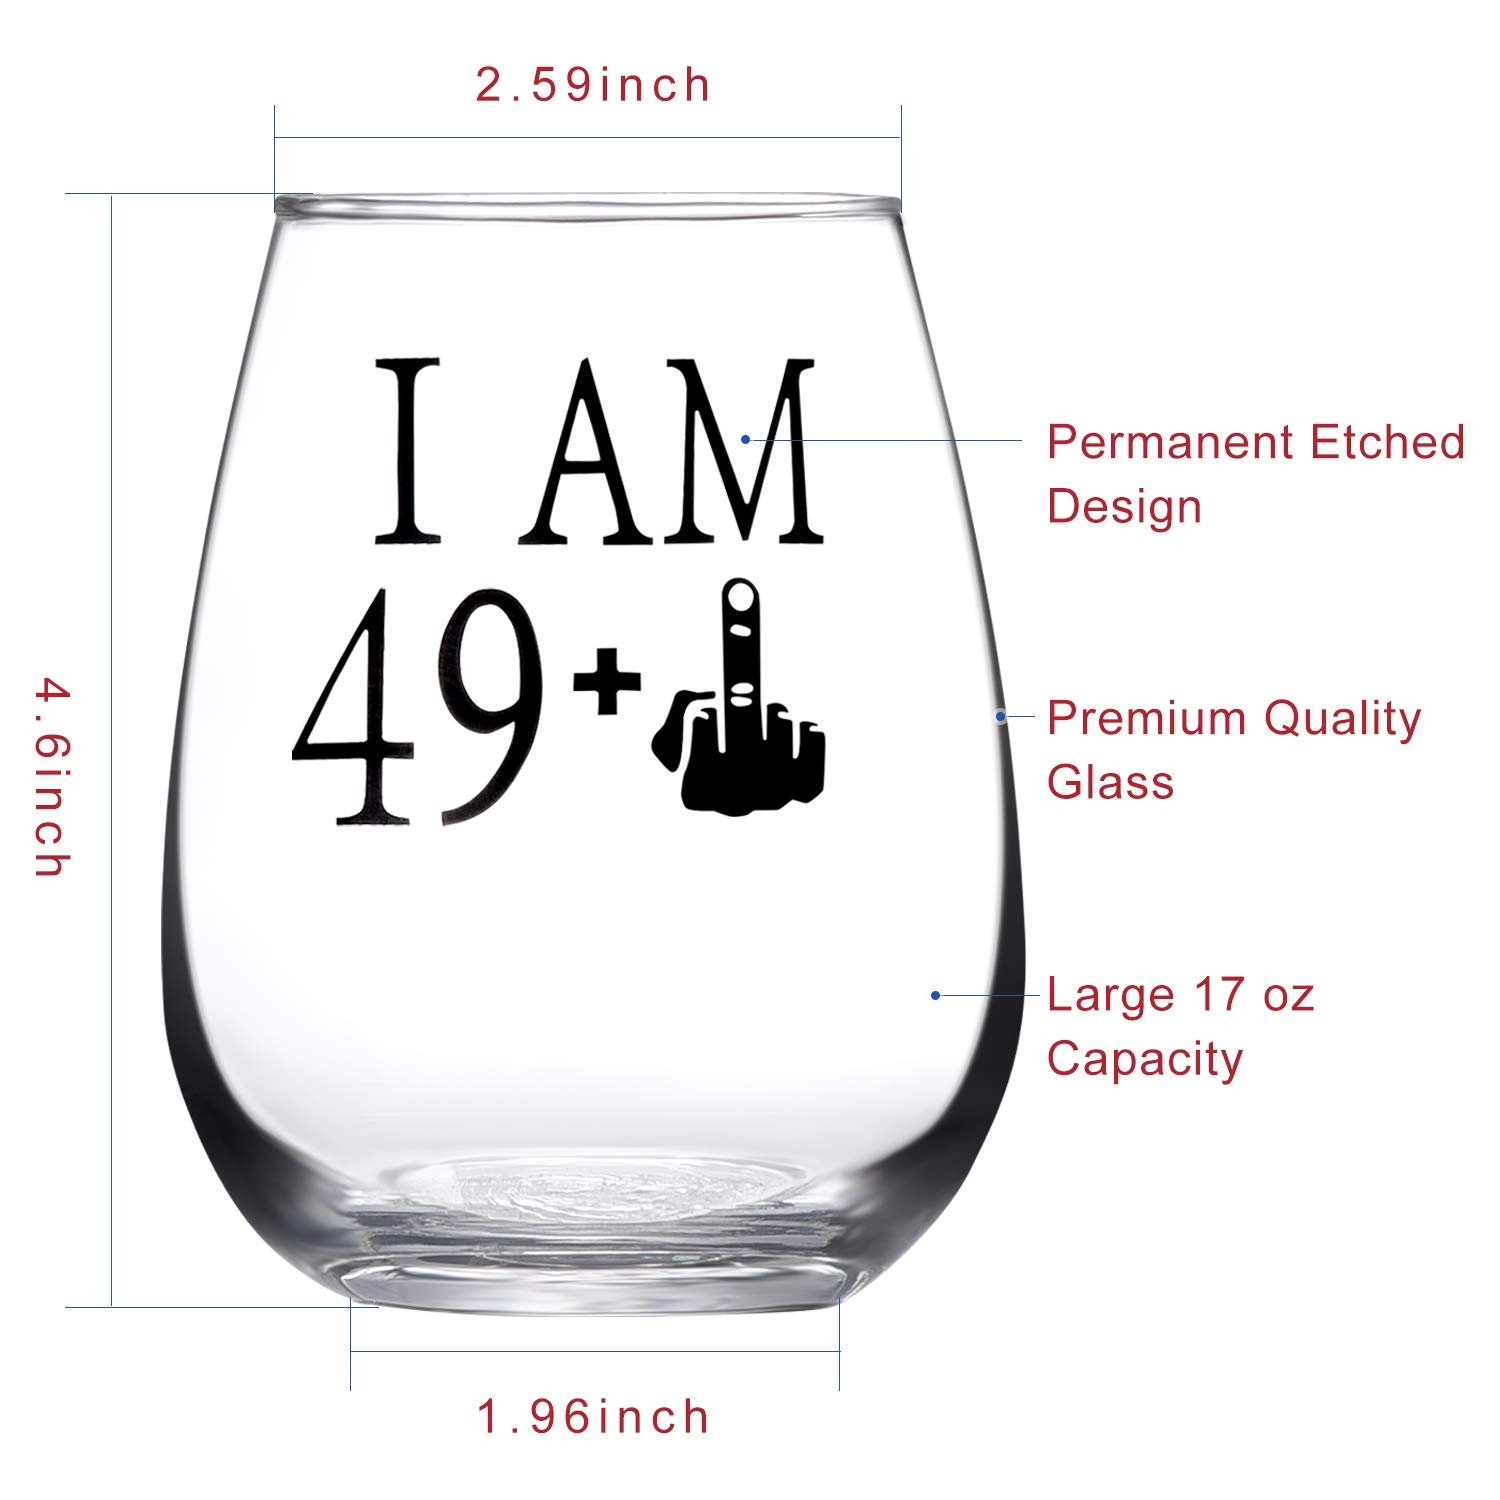 49 + One Middle Finger Stemless Wine Glass 50th Birthday Gift for Men Women Funny Turning 50 Bday Present Drinking Party Decoration, Holiday Gift for Wine Lovers,Black